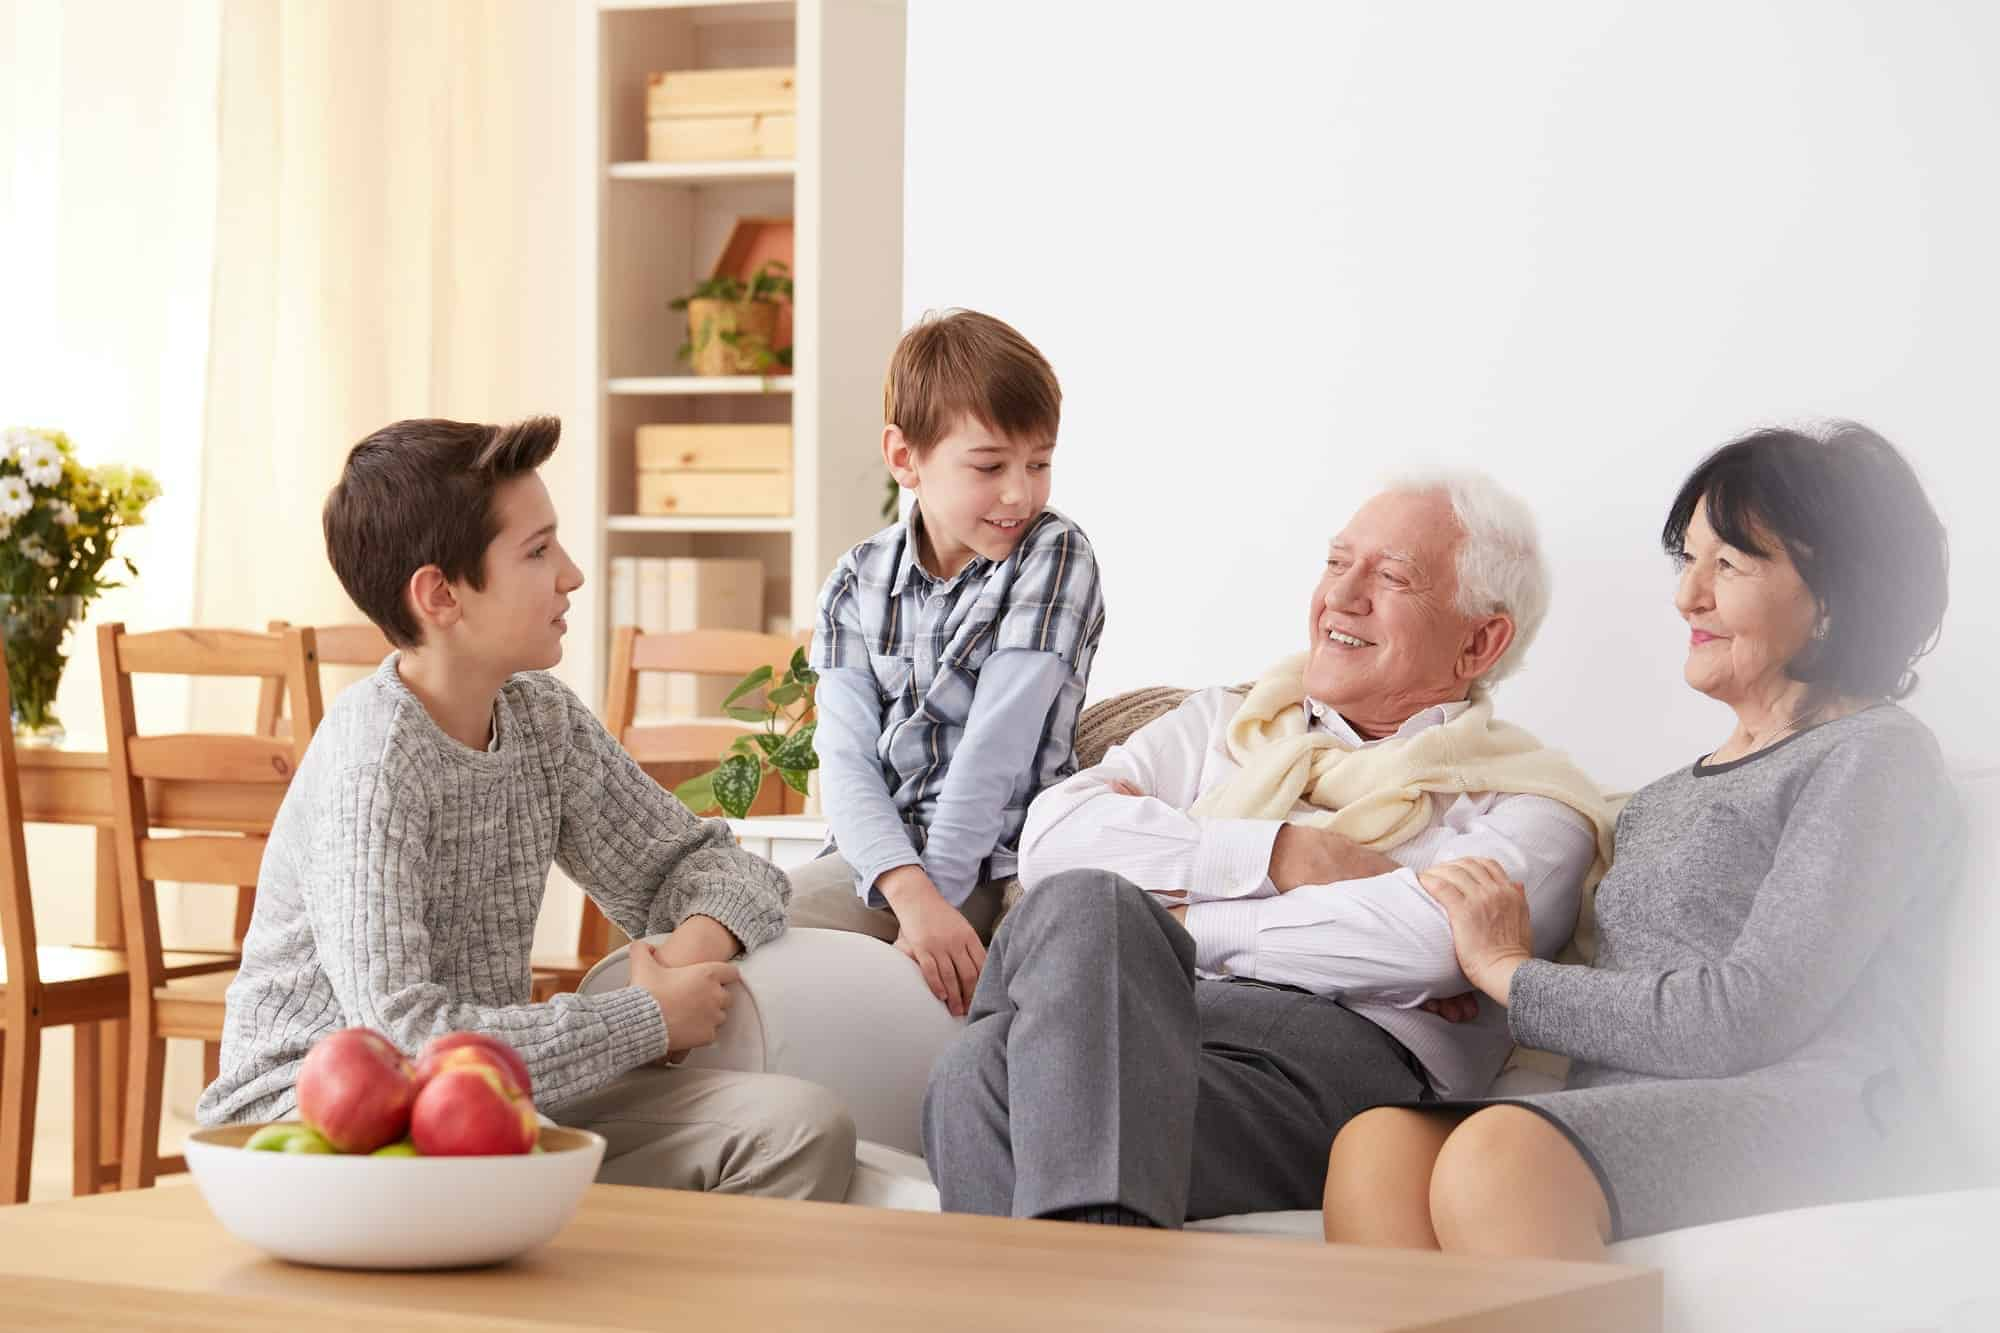 Boys talking with grandparents